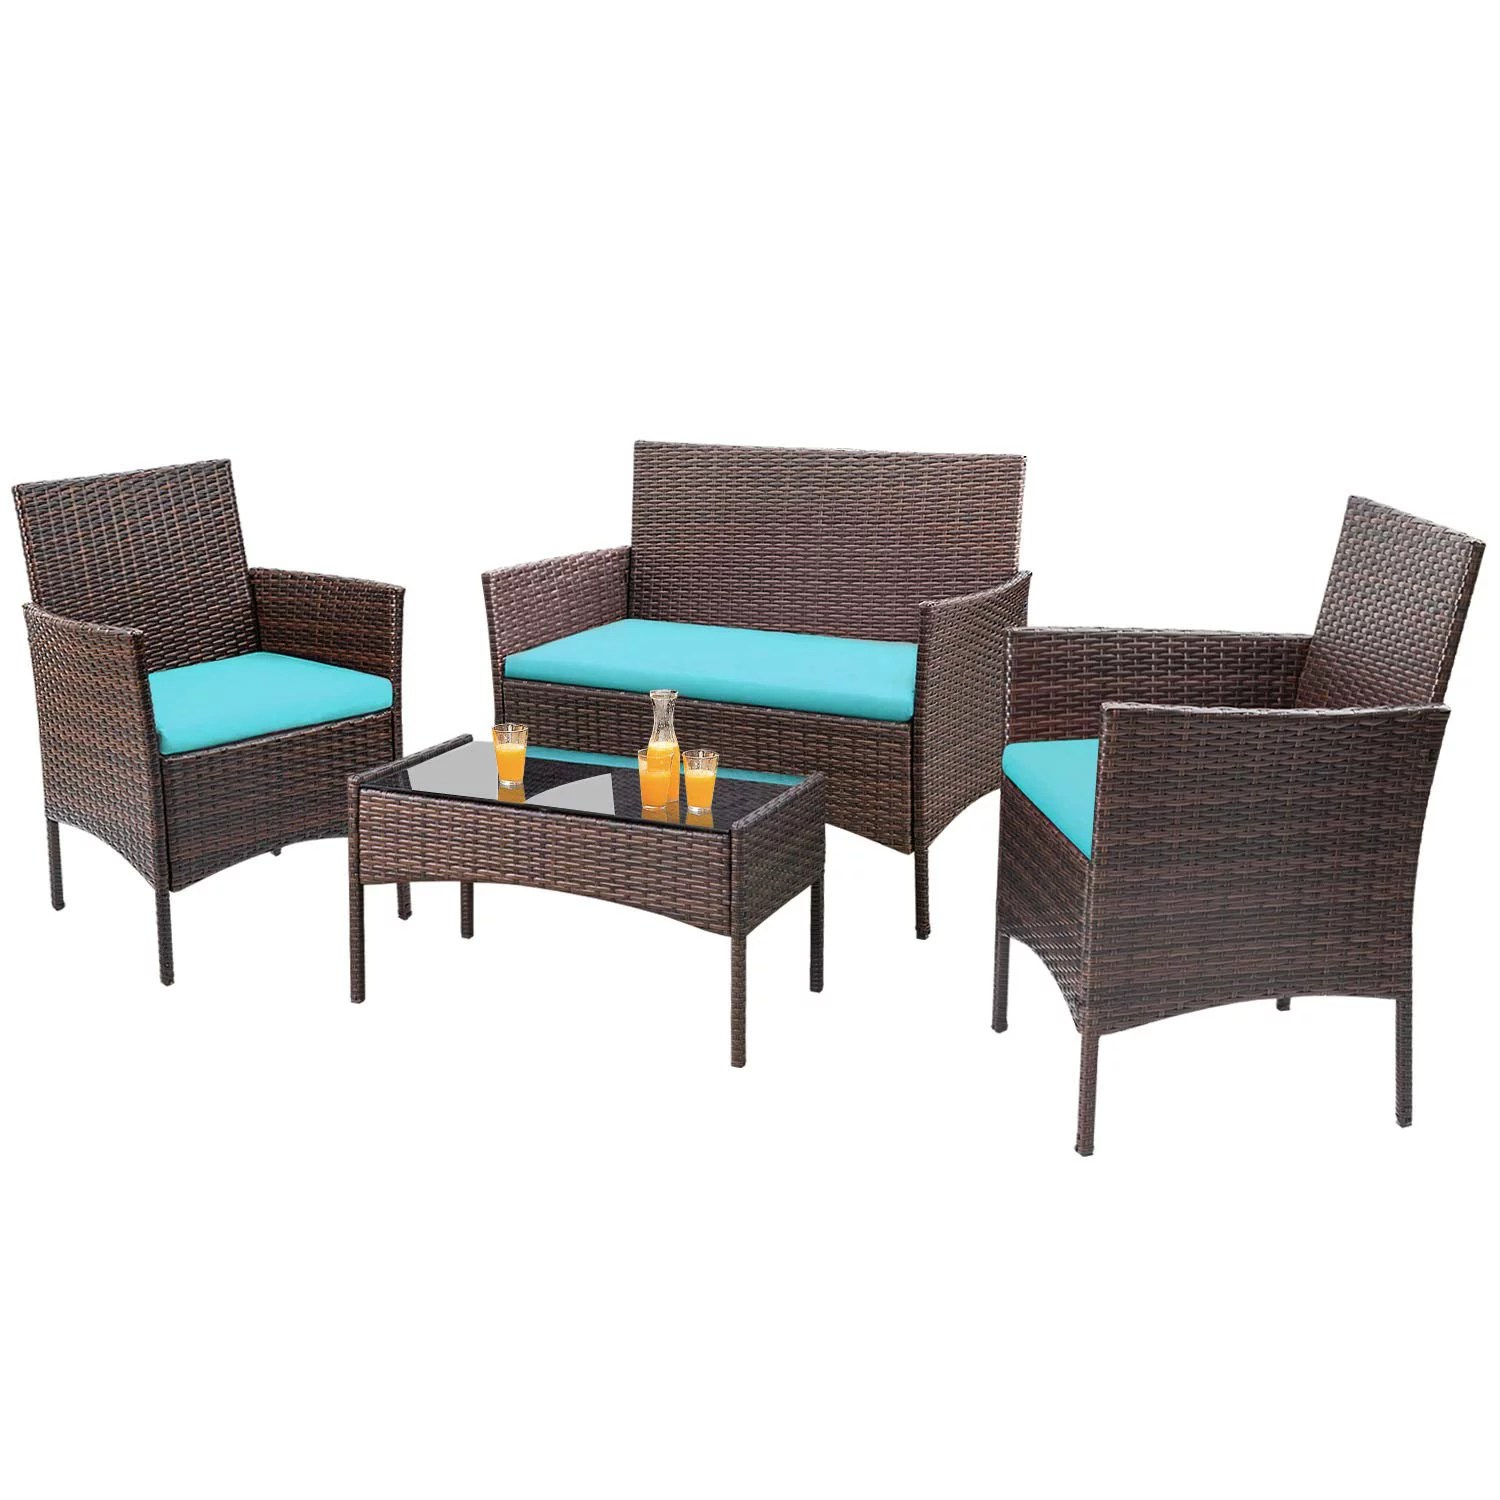 walnew 4 pcs outdoor patio furniture brown pe rattan wicker table and chairs set bar balcony backyard garden porch sets with cushioned tempered glass